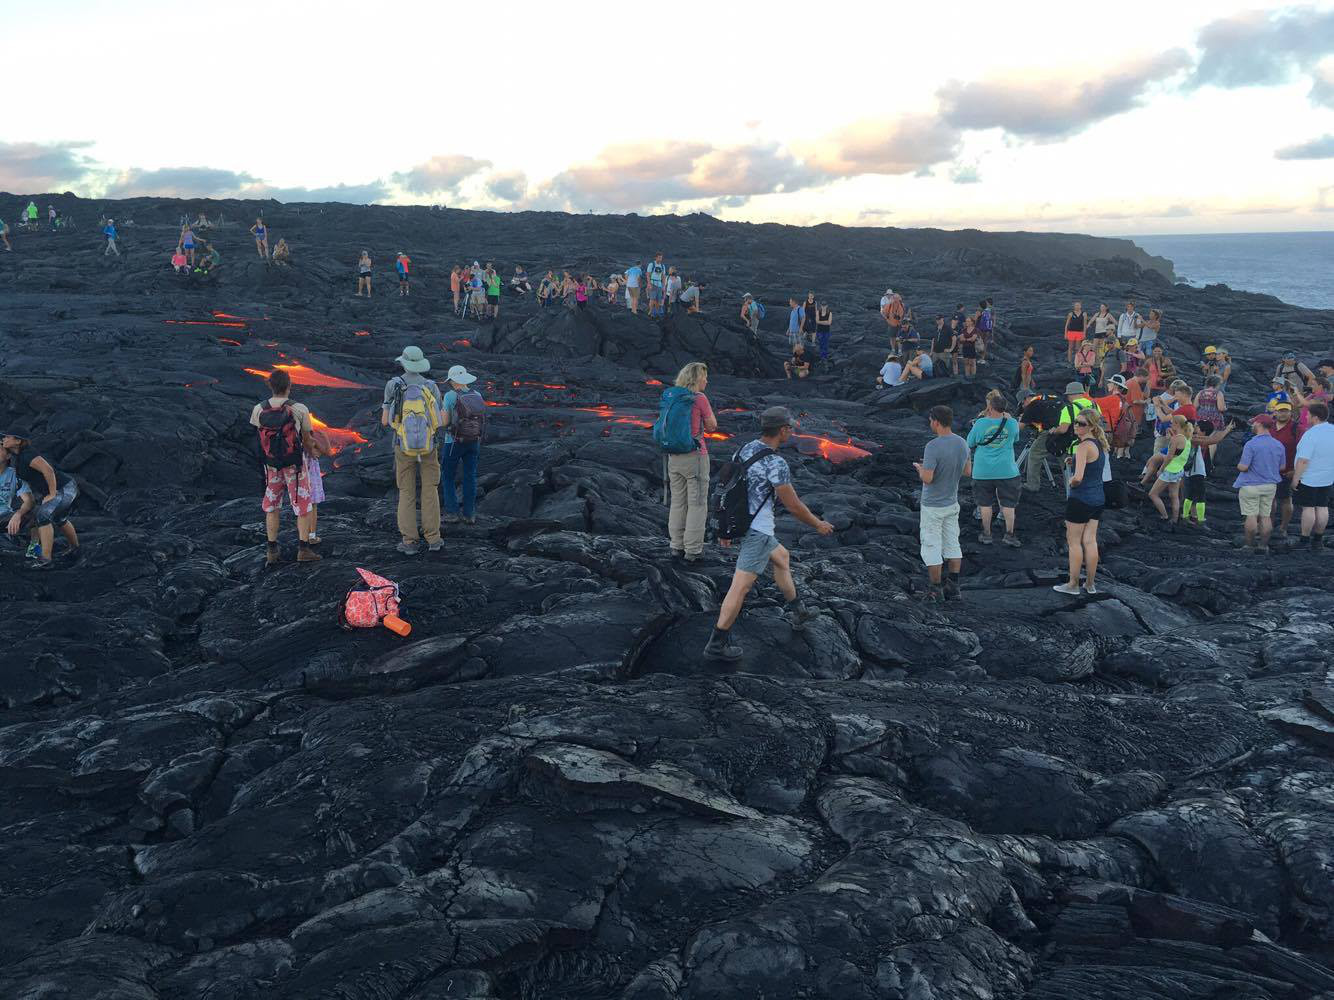 A crowd gathers around the distal tip of the 61g lava flow as it crosses the road en route to the ocean. Photo by John Tarson of Epic Lava.